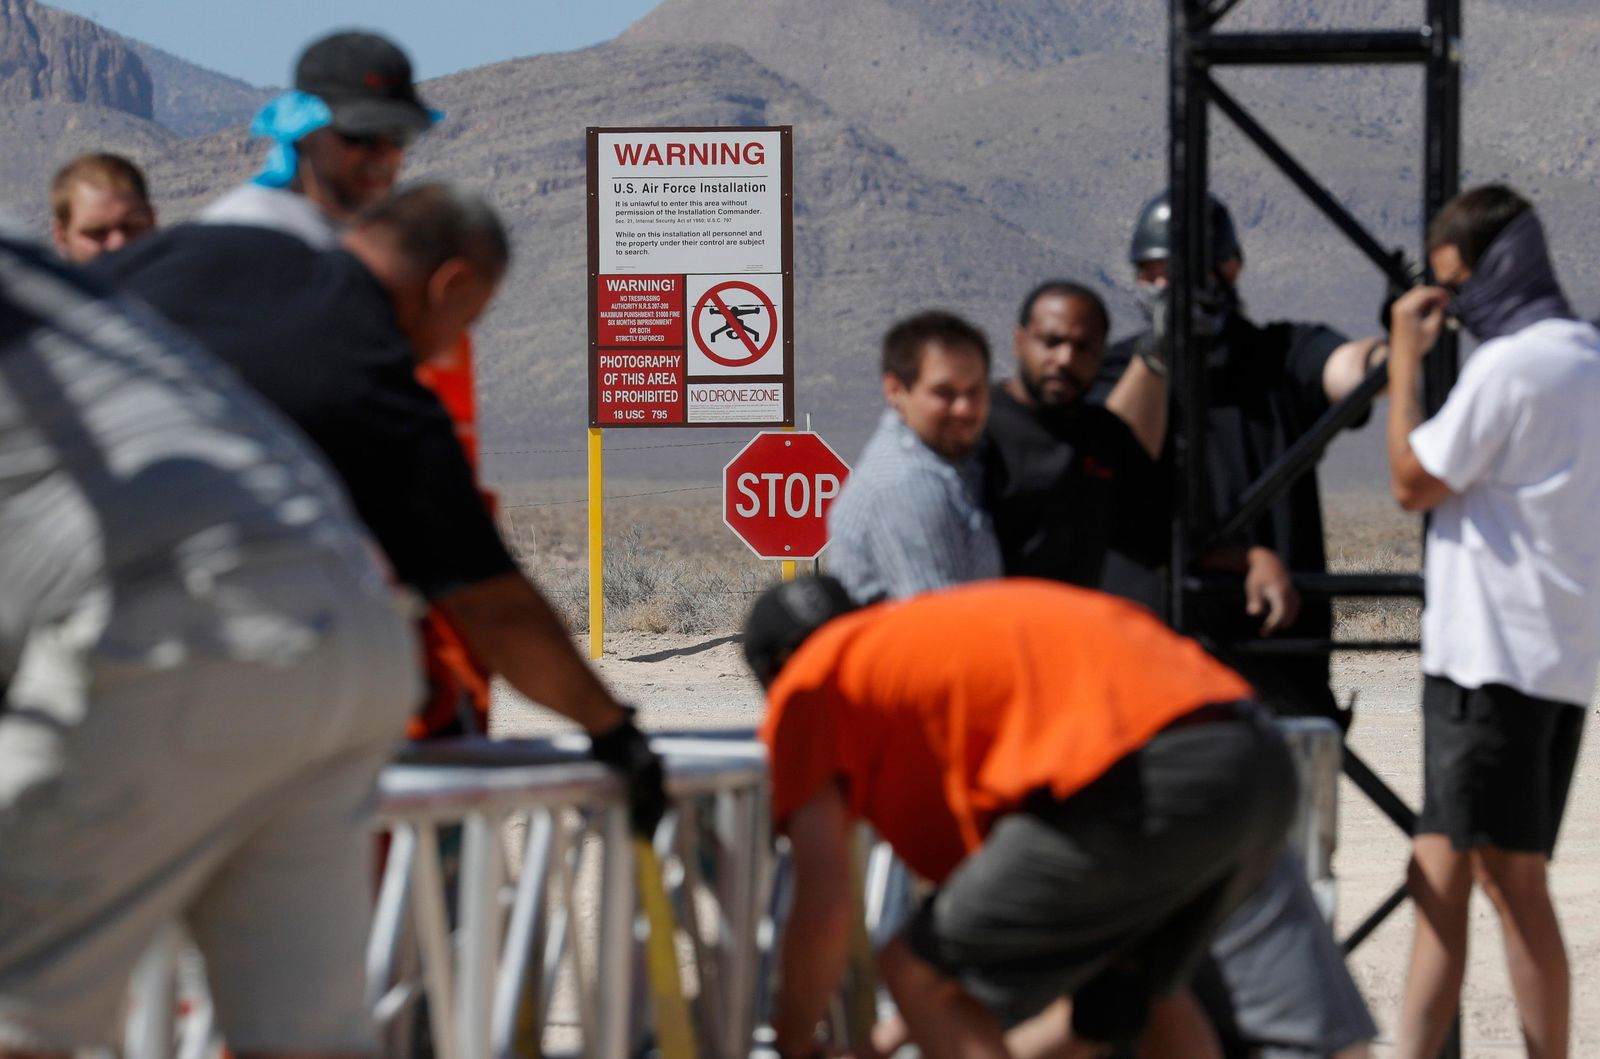 "Workers erect a stage near a replica Area 51 gate sign at the Alien Research Center, Wednesday, Sept. 18, 2019, in Hiko, Nev. Visitors descending on the remote Nevada desert for ""Storm Area 51"" are from Earth, not outer space. No one knows what to expect, but the two tiny towns of Rachel and Hiko near the once-secret military research site are preparing for an influx of people over the next few days. (AP Photo/John Locher)"